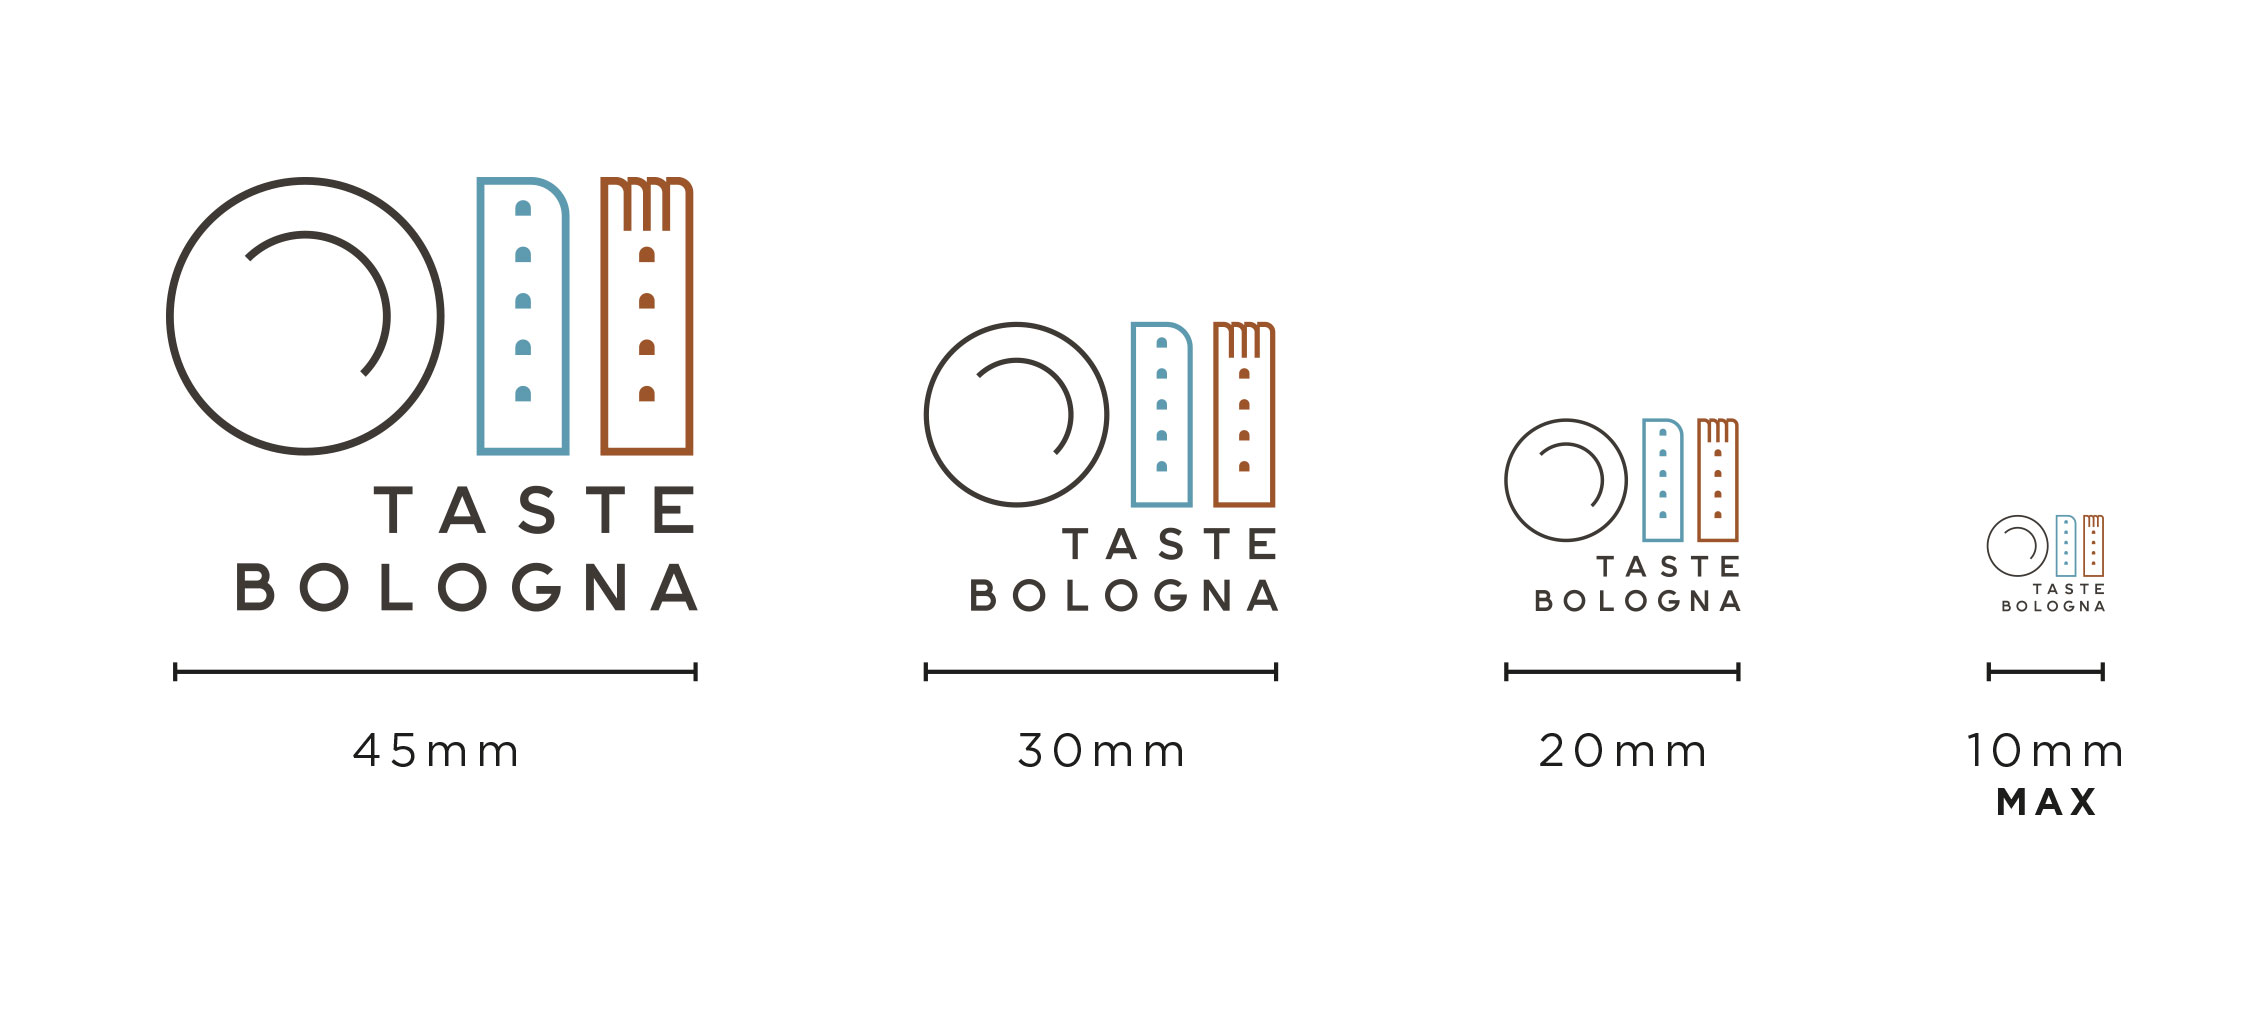 Different size of Taste Bologna logo, to explain which is the minimum size you can have for this logo (actually 10mm)